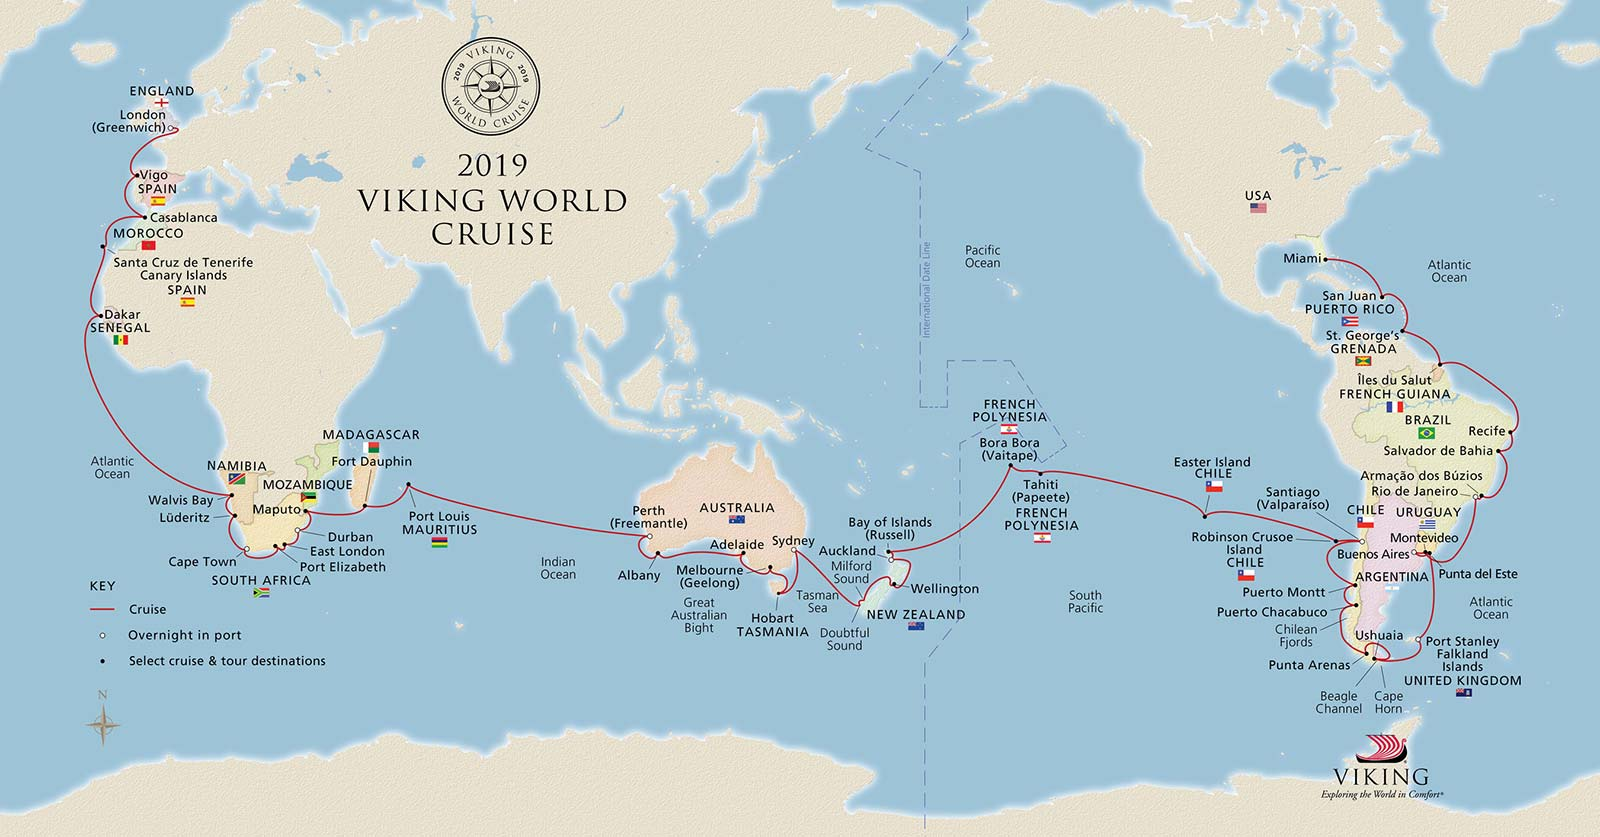 Ahead of its first-ever World Cruise scheduled for this winter, Viking Cruises announced Viking Sun will continue to sail the globe on its second World Cruise, departing January 2019